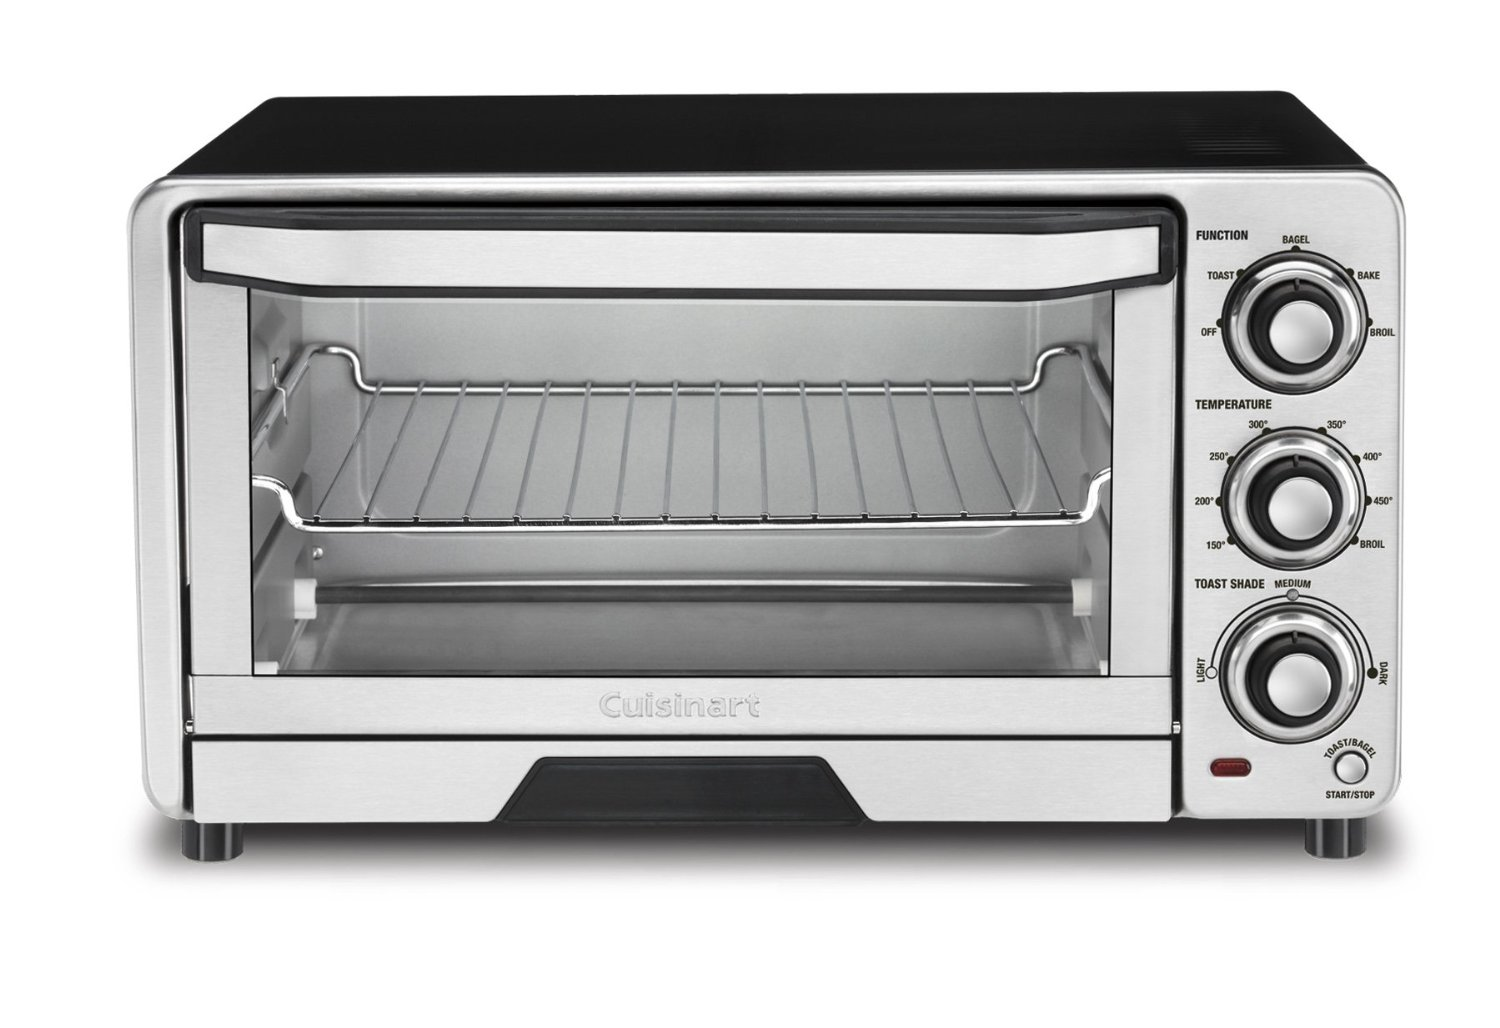 l hz volts hot w oven vonshef double plate for volt toaster large and